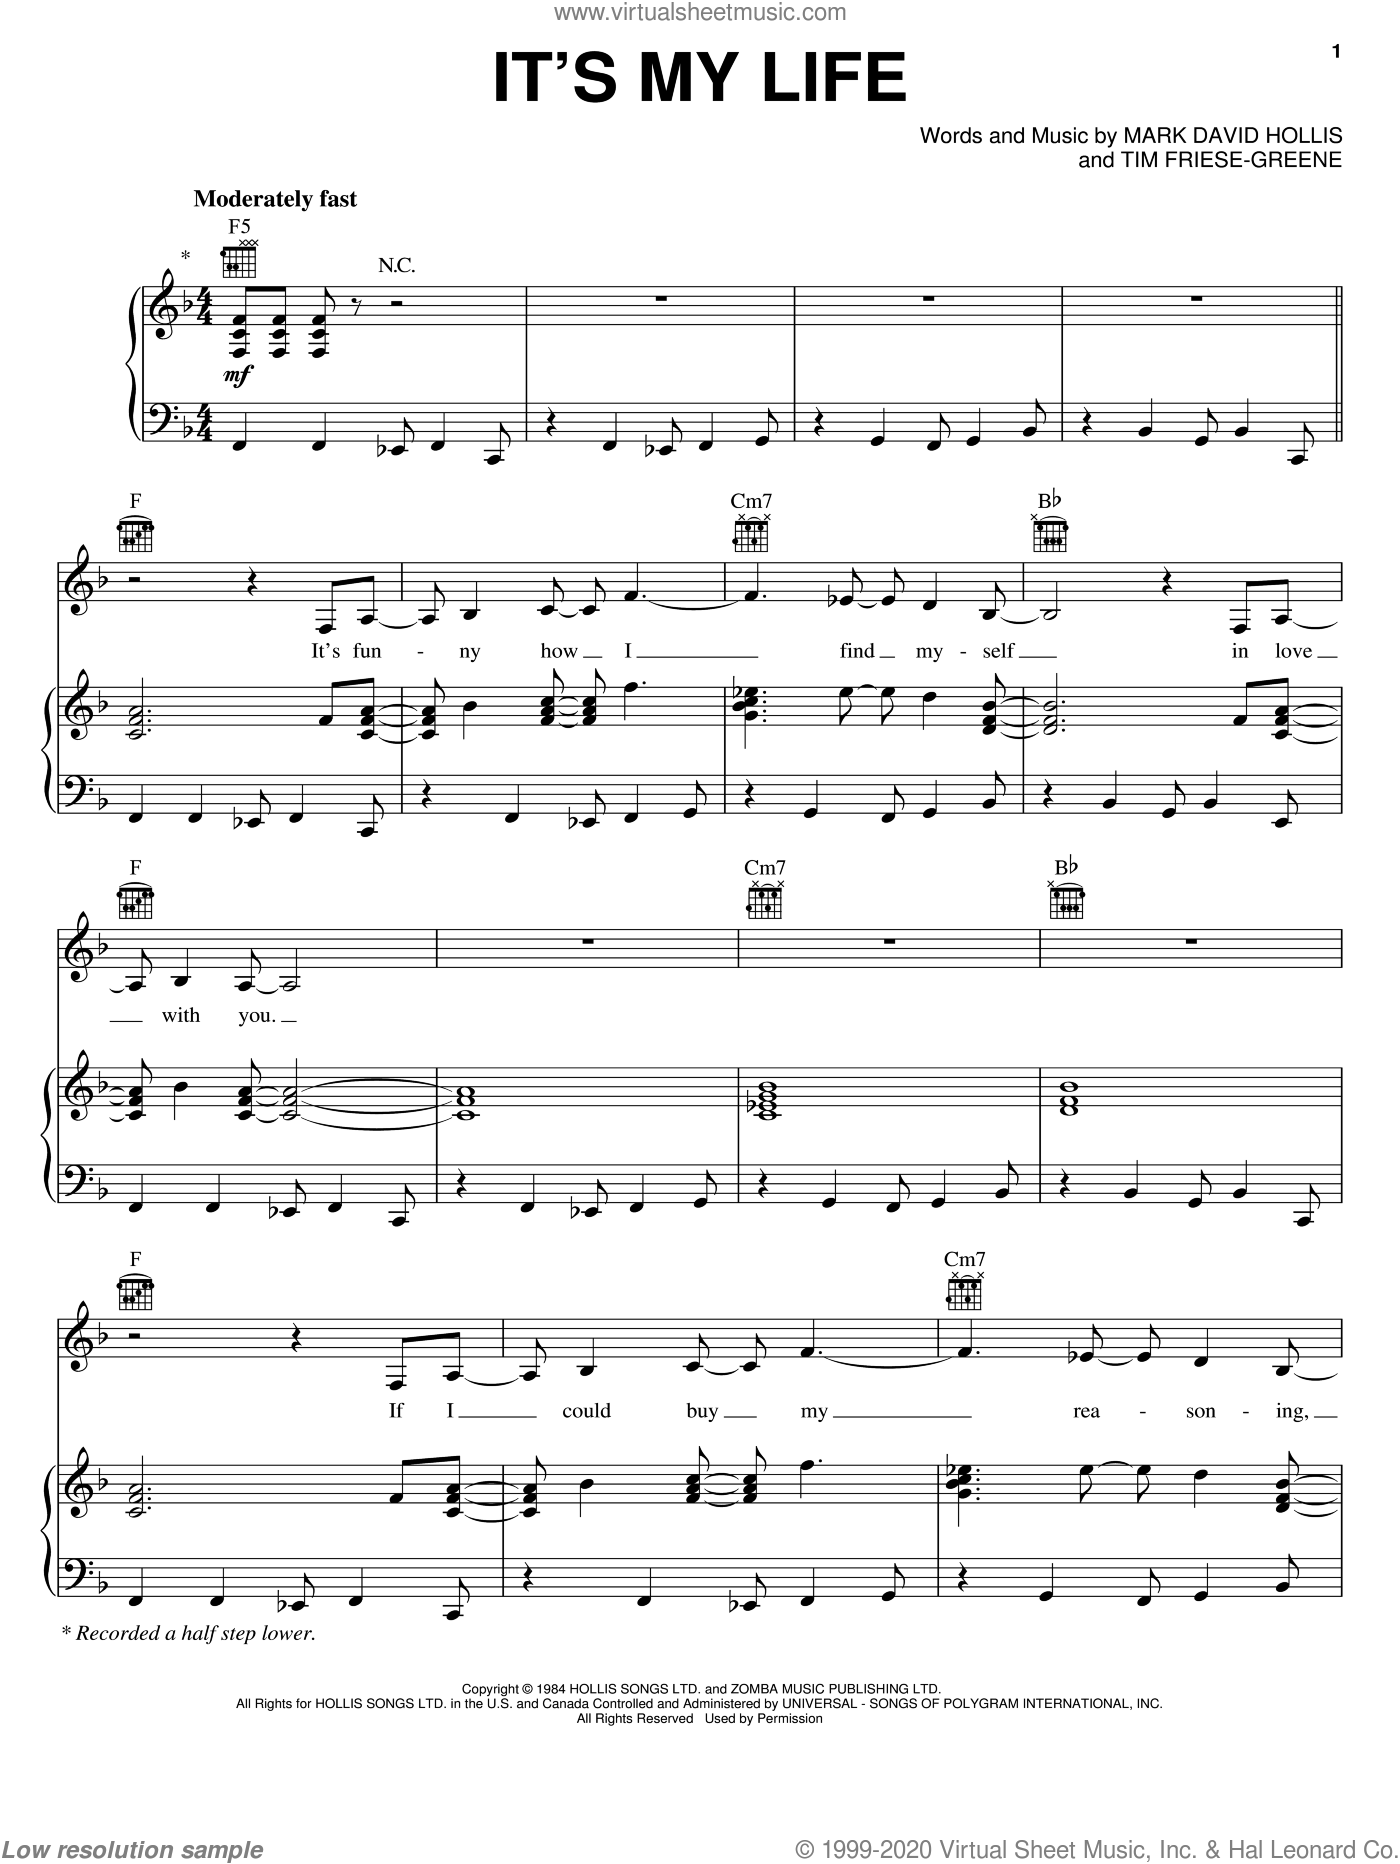 It's My Life sheet music for voice, piano or guitar by Talk Talk, No Doubt, Mark Hollis and Tim Friese-Greene, intermediate skill level